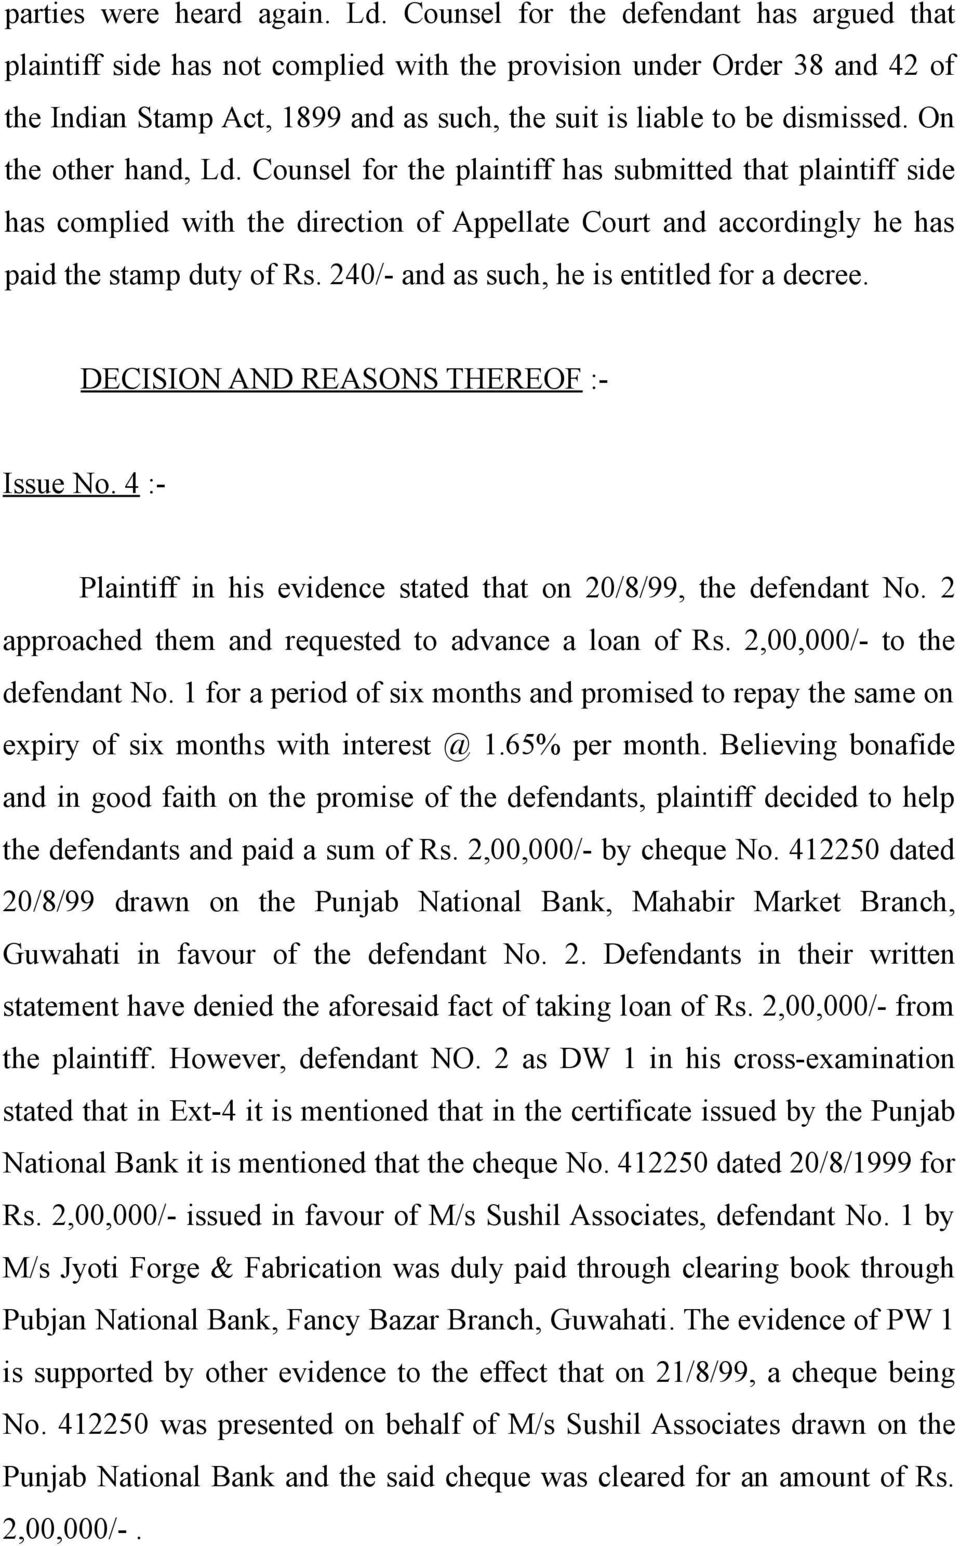 On the other hand, Ld. Counsel for the plaintiff has submitted that plaintiff side has complied with the direction of Appellate Court and accordingly he has paid the stamp duty of Rs.